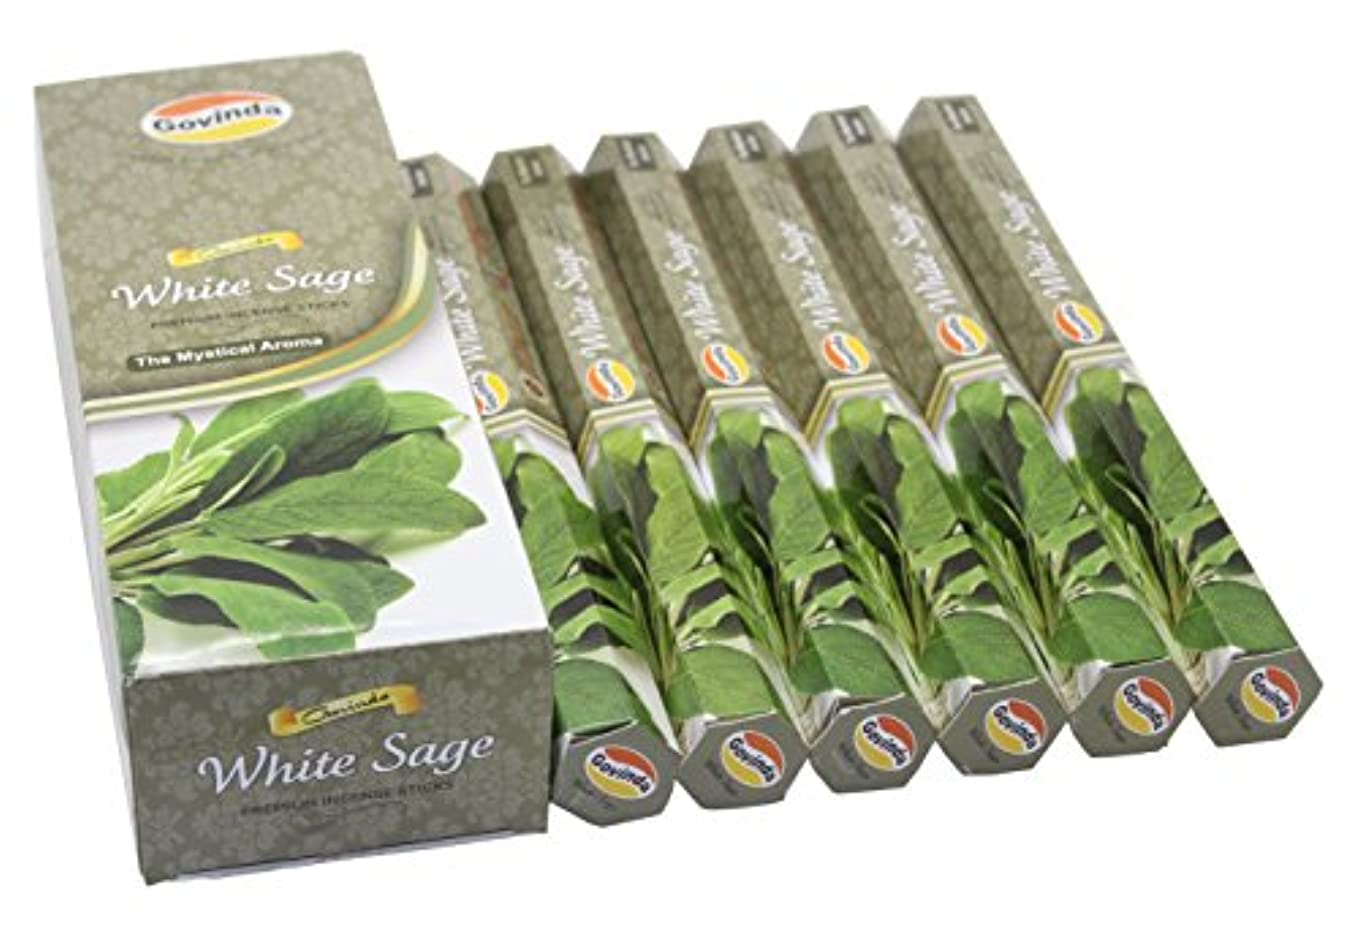 ベアリング市場カイウスGovinda Incense - White Sage - 120 Incense Sticks, Premium Incense, Masala Coated